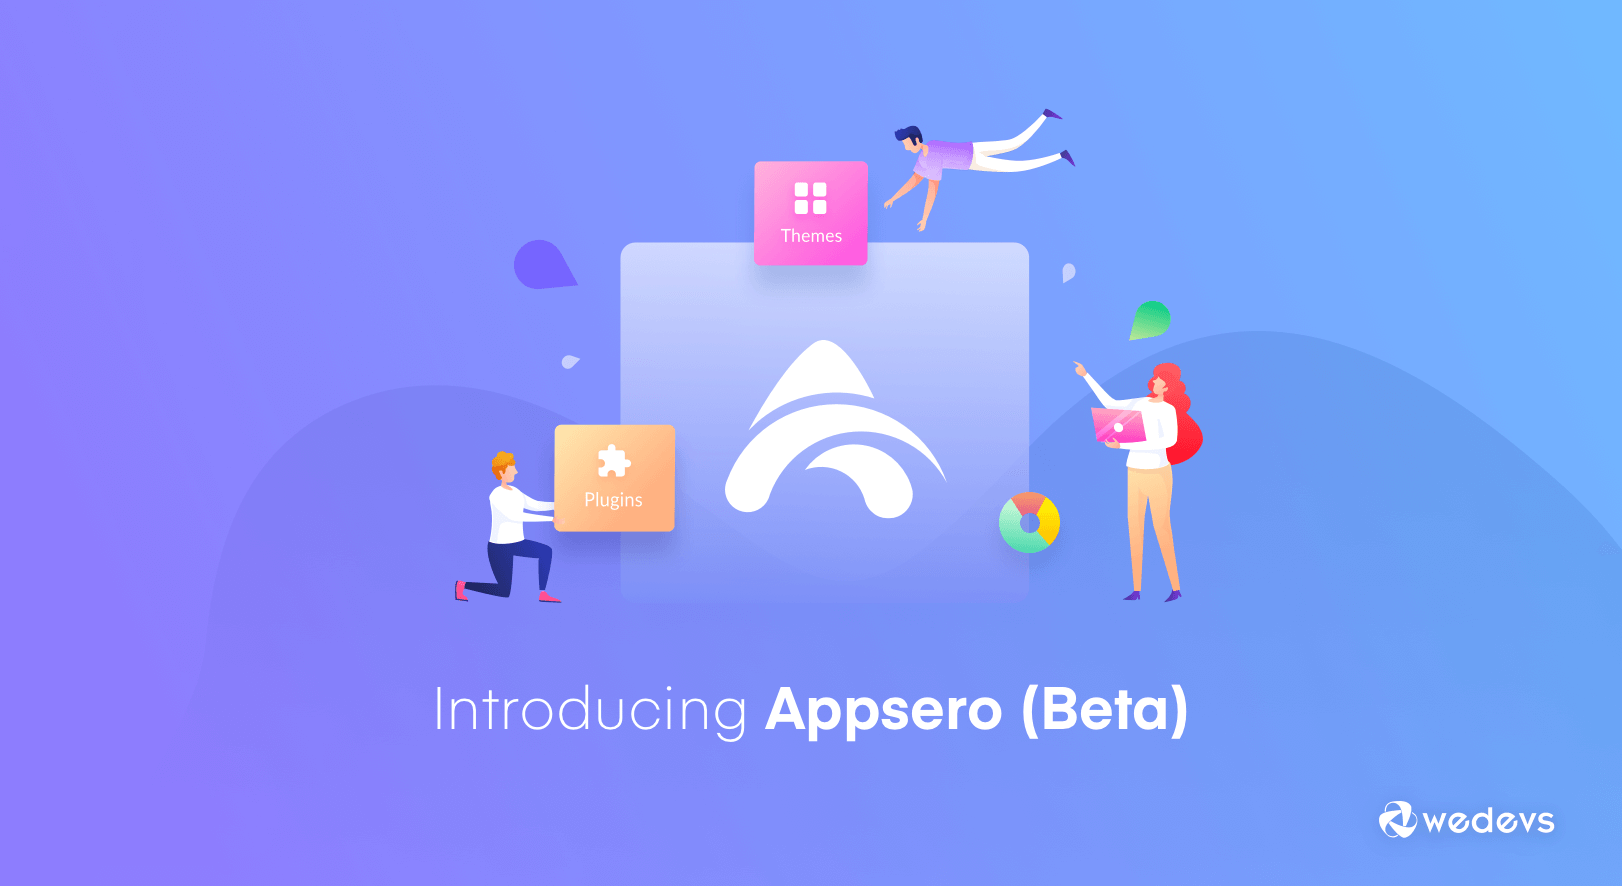 Introducing Appsero: Ultimate Platform for WordPress Devs to Manage Everything from One Single Place